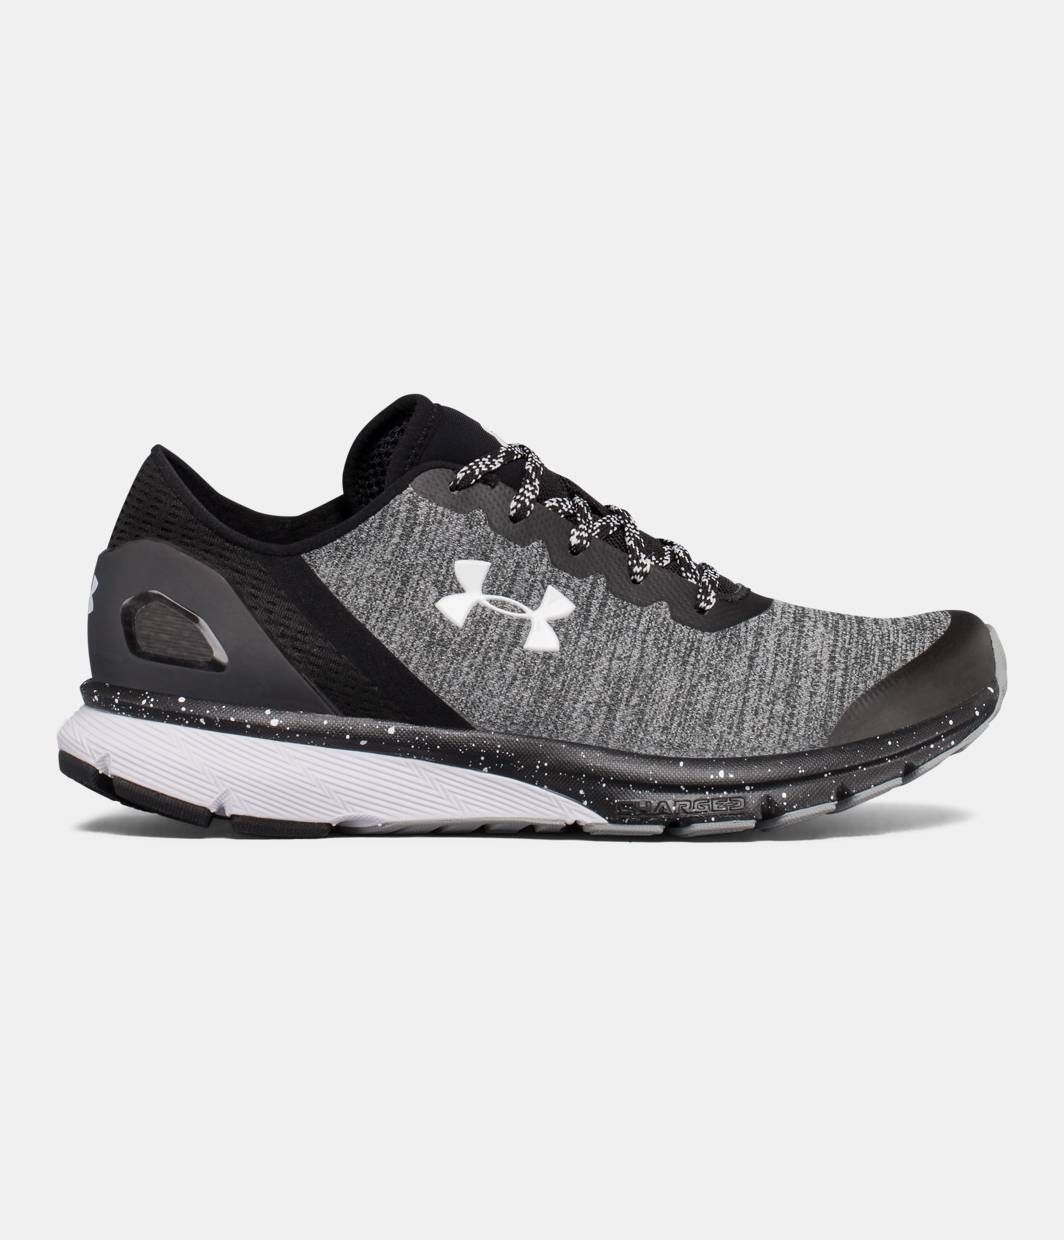 Under Armour Charged Escape 2 ... Men's Running Shoes 8gfIIOAN